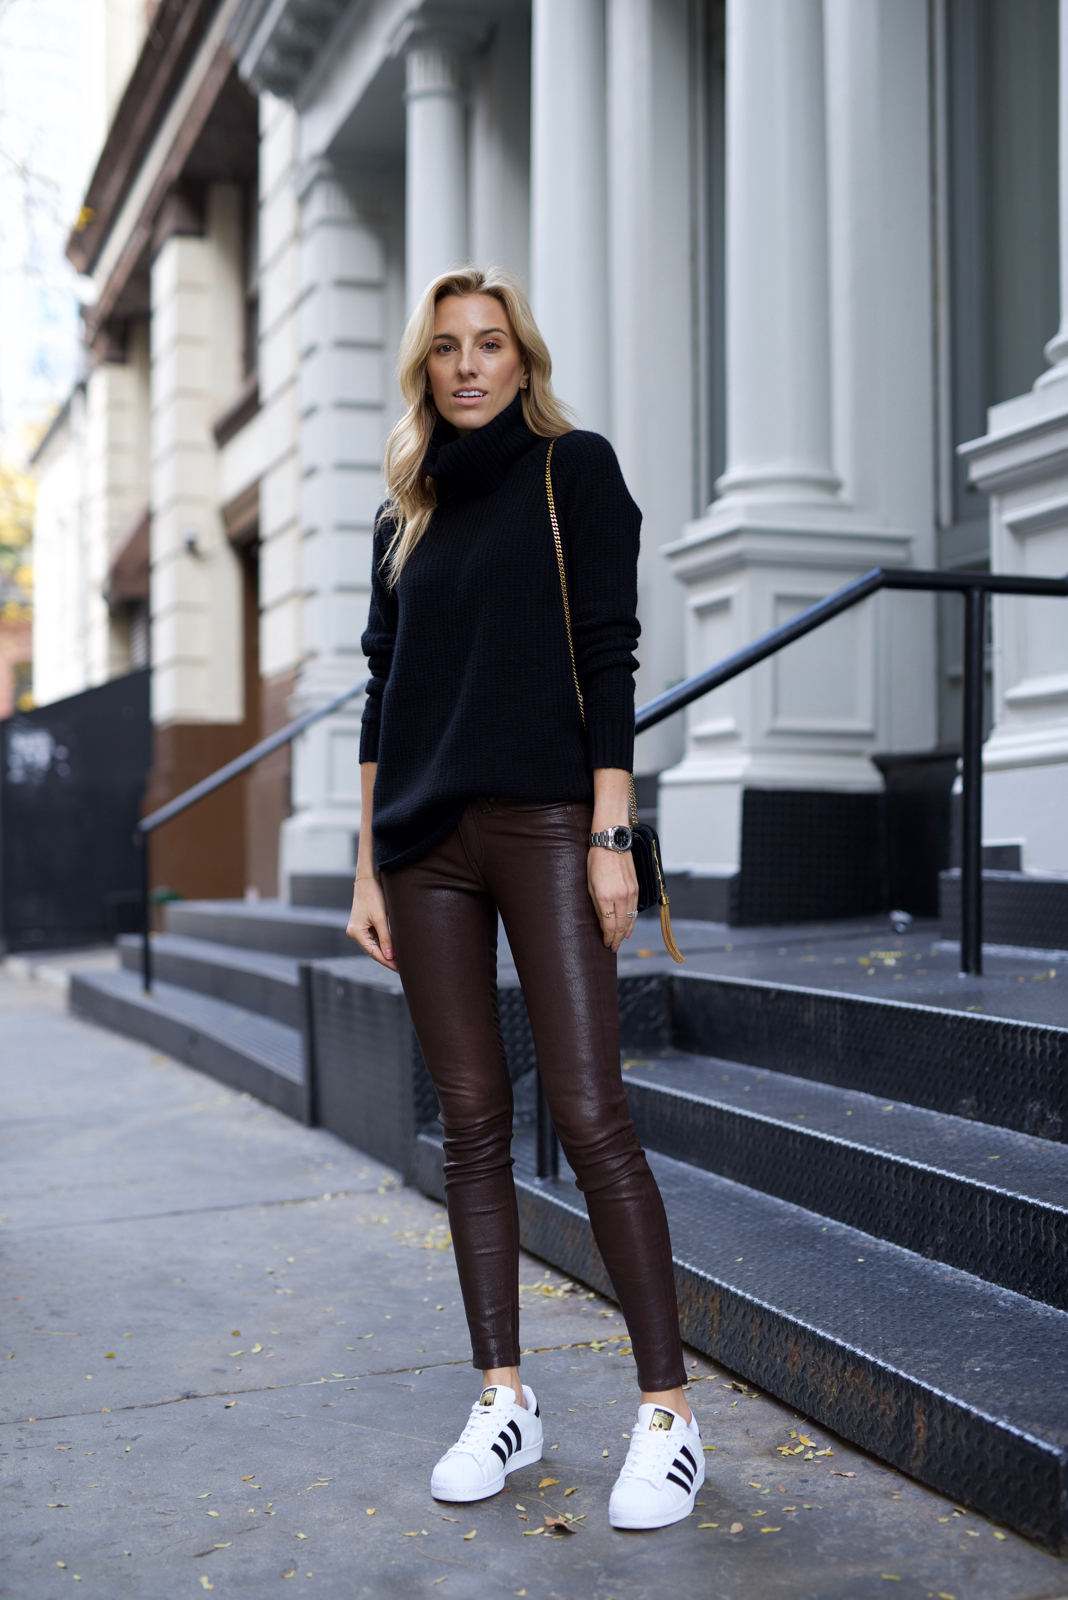 Rag & Bone Leather pants, Holiday outfit inspiration, Adidas Superstar shoes, Cashmere sweater